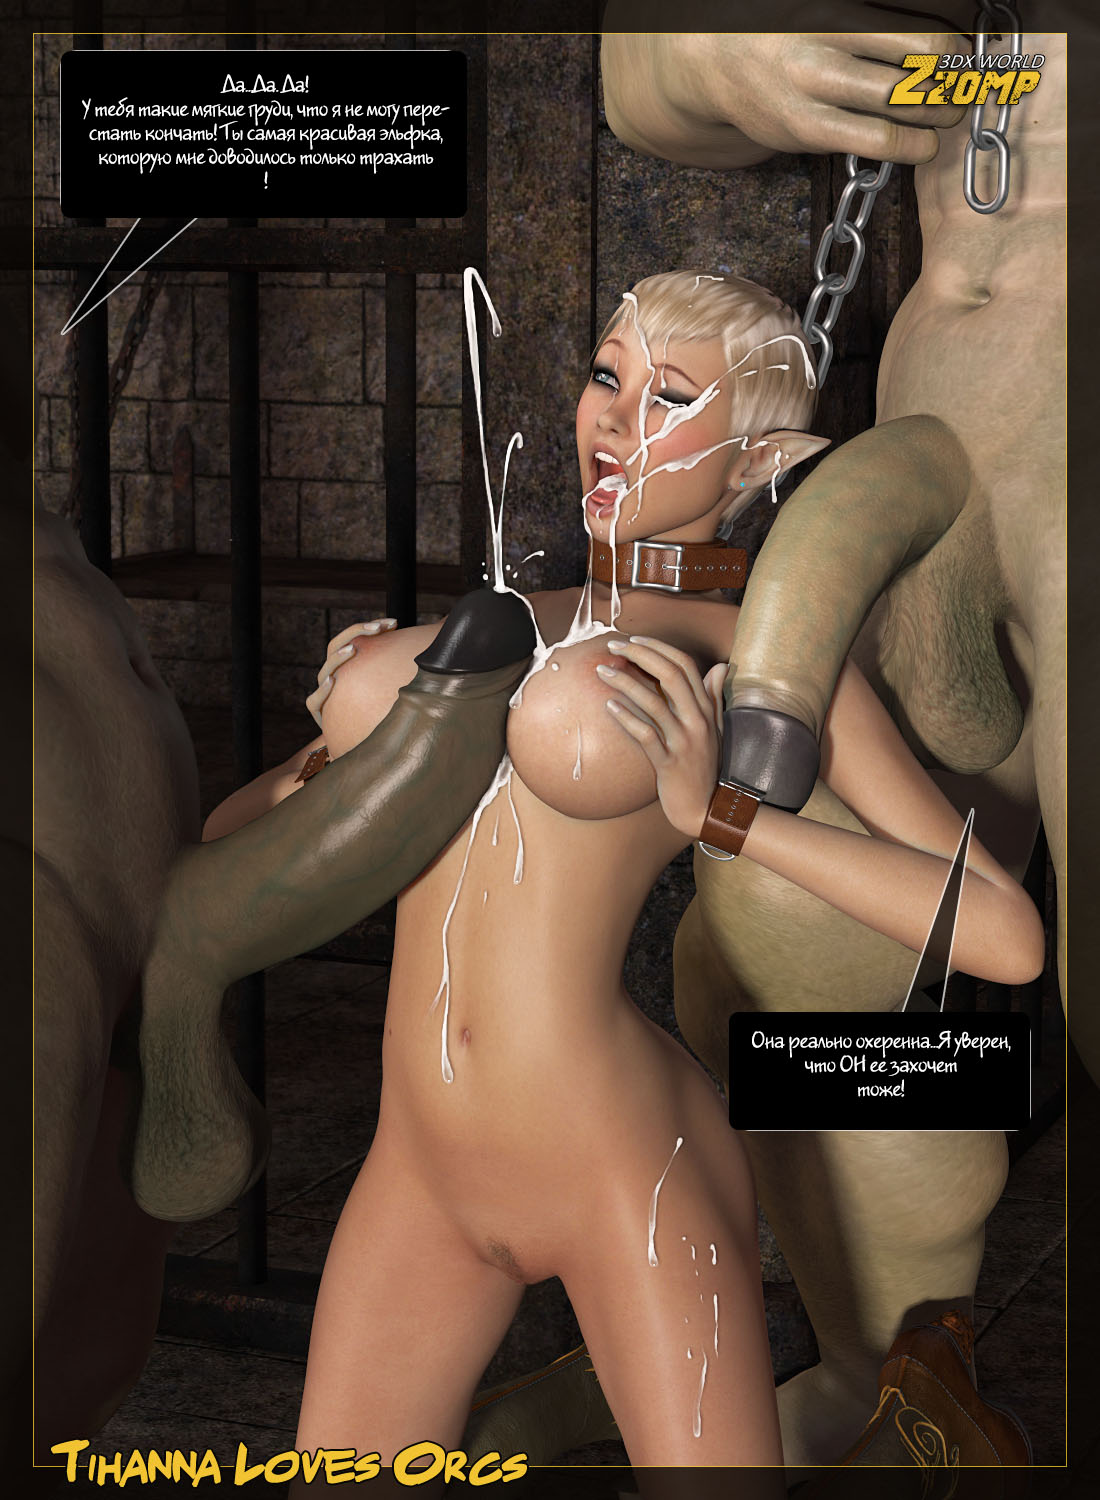 Orcs men fucking elves men pics porno video